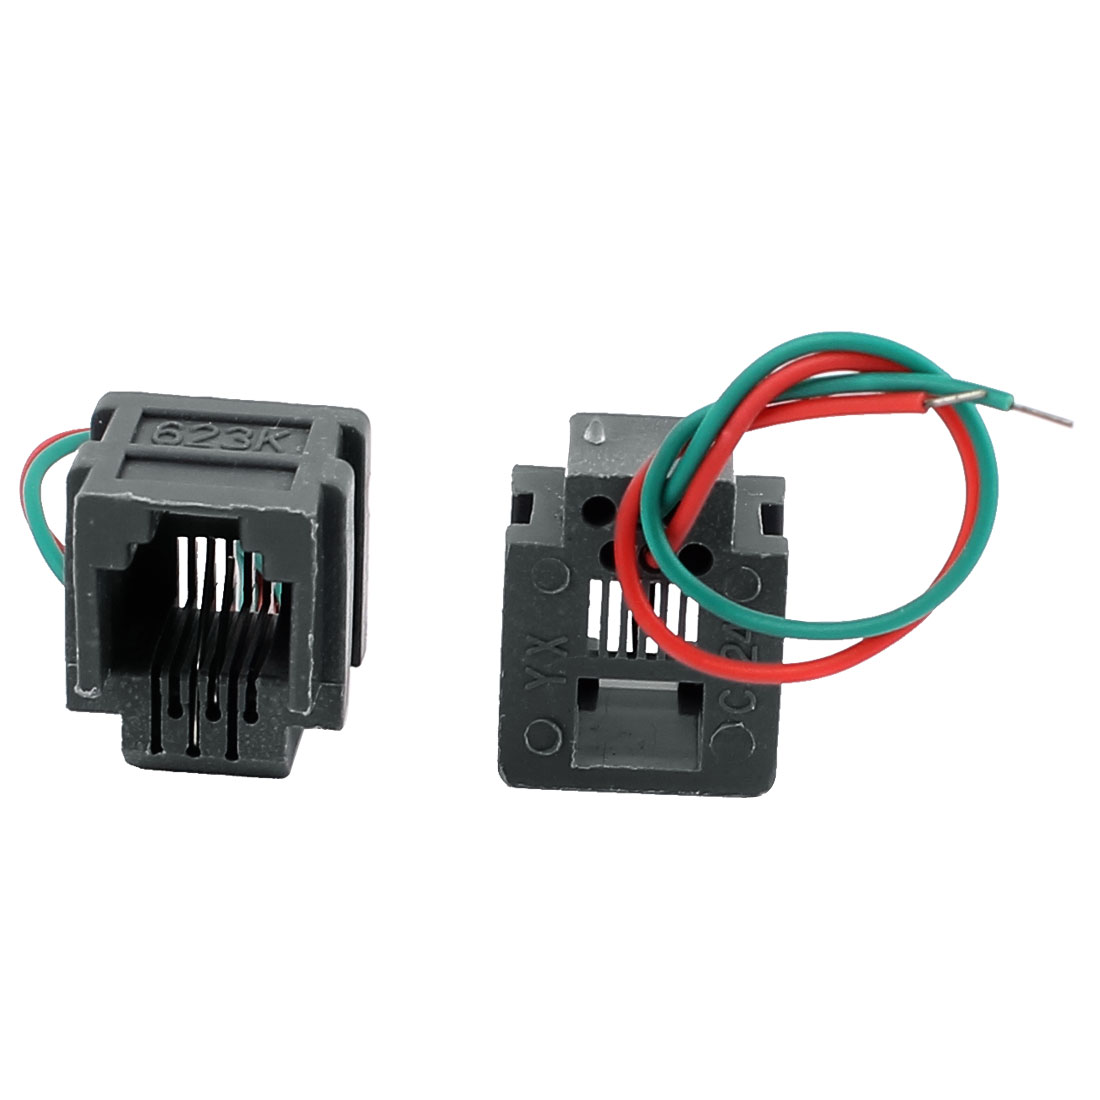 hight resolution of 623k 6p2c rj11 female telephone network cable connector w 8cm wires 2pcs